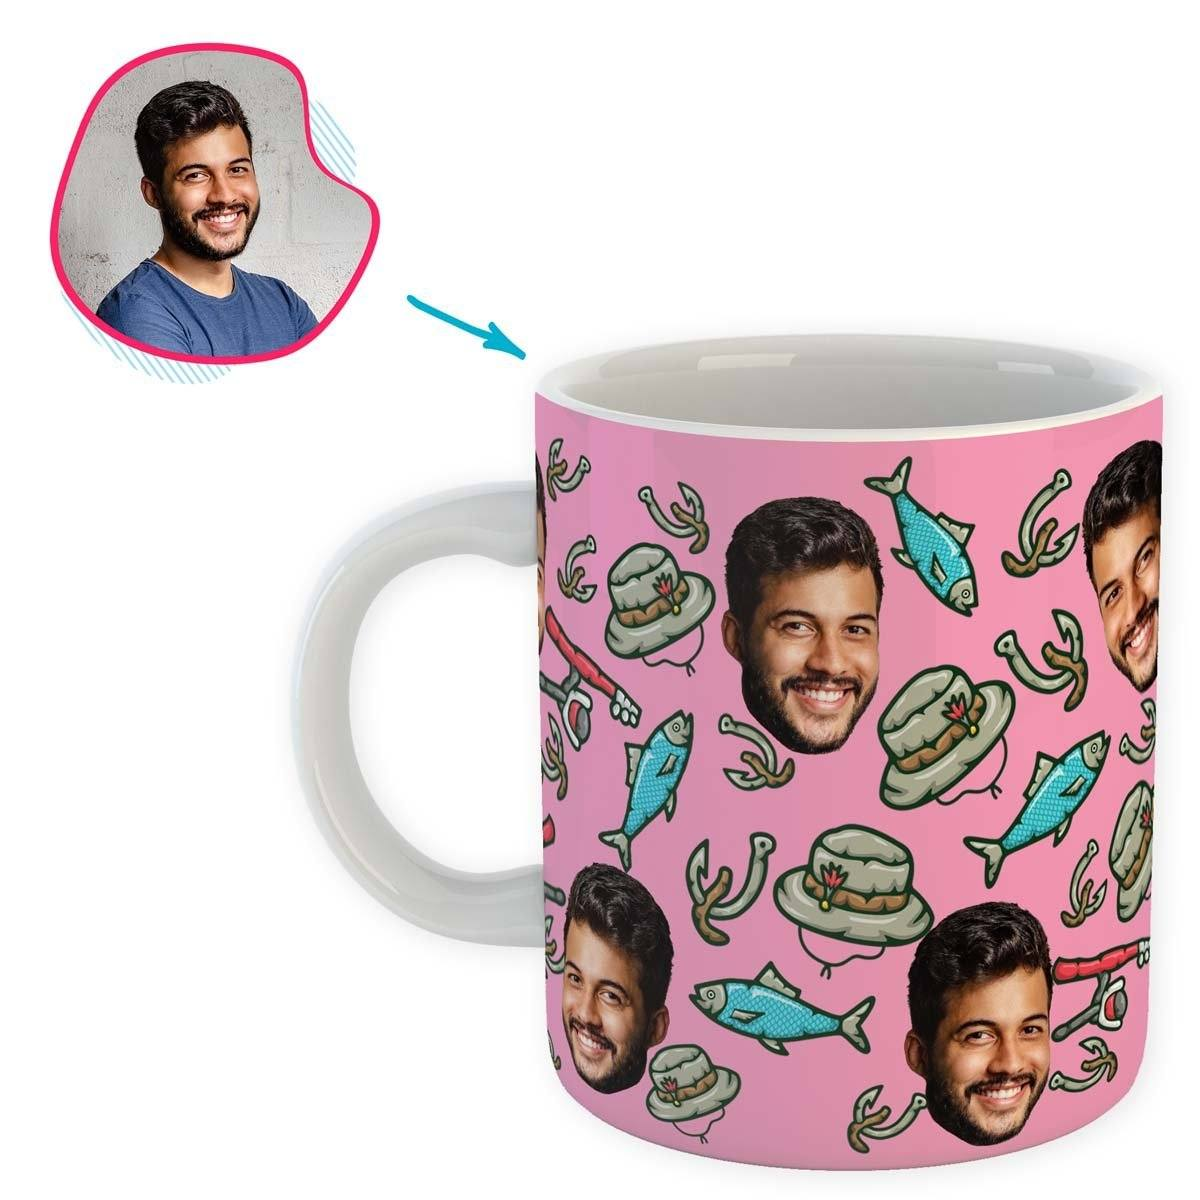 Pink Fishing personalized mug with photo of face printed on it